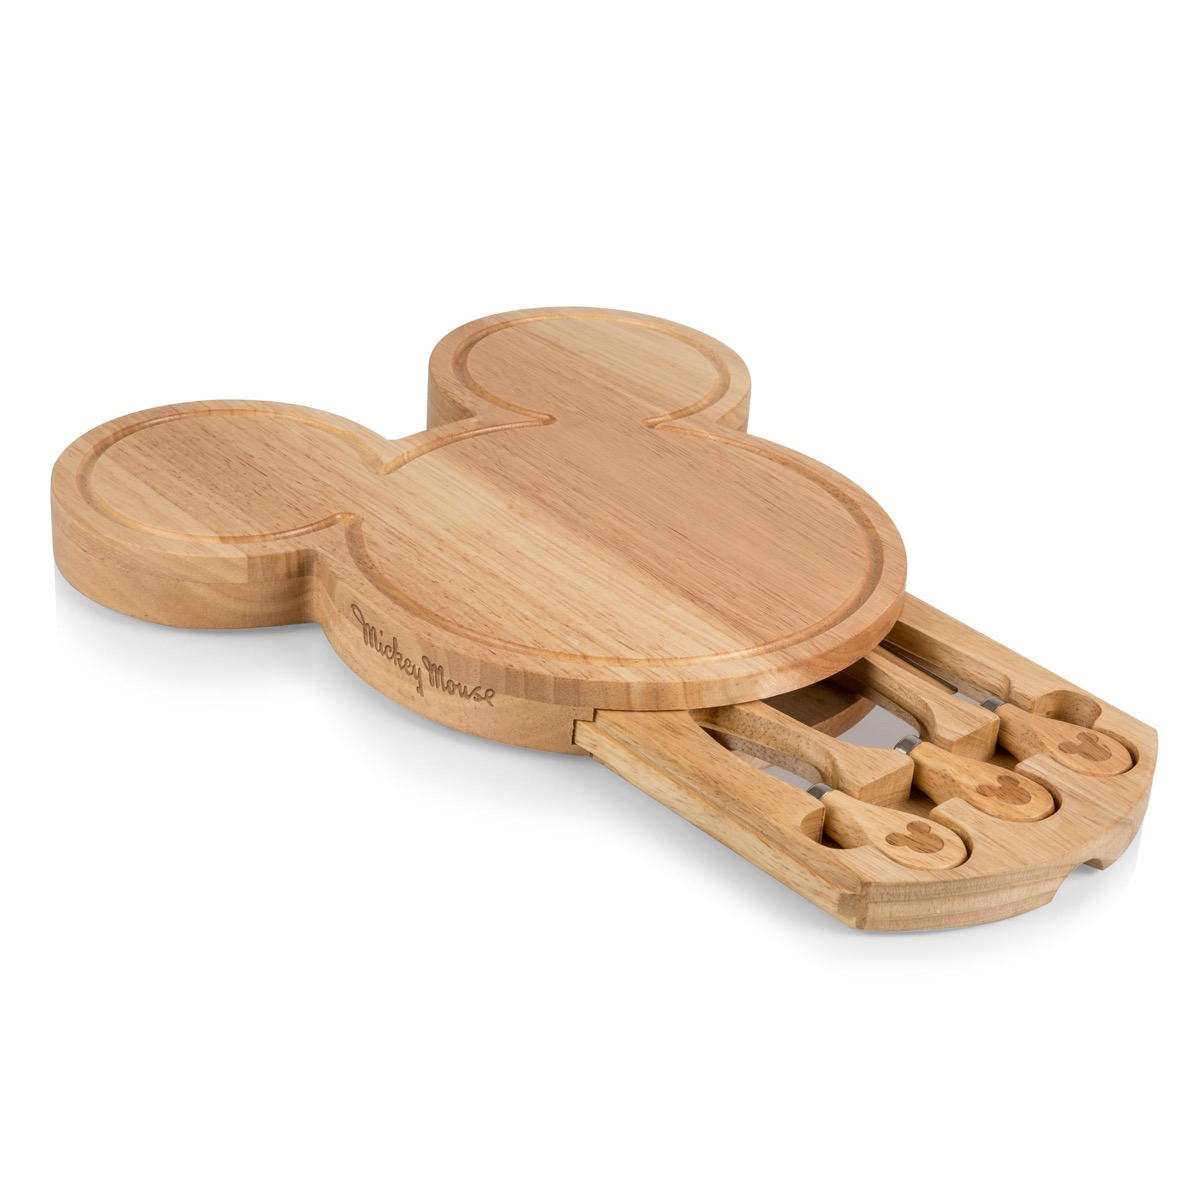 Mickey Mouse cheese board